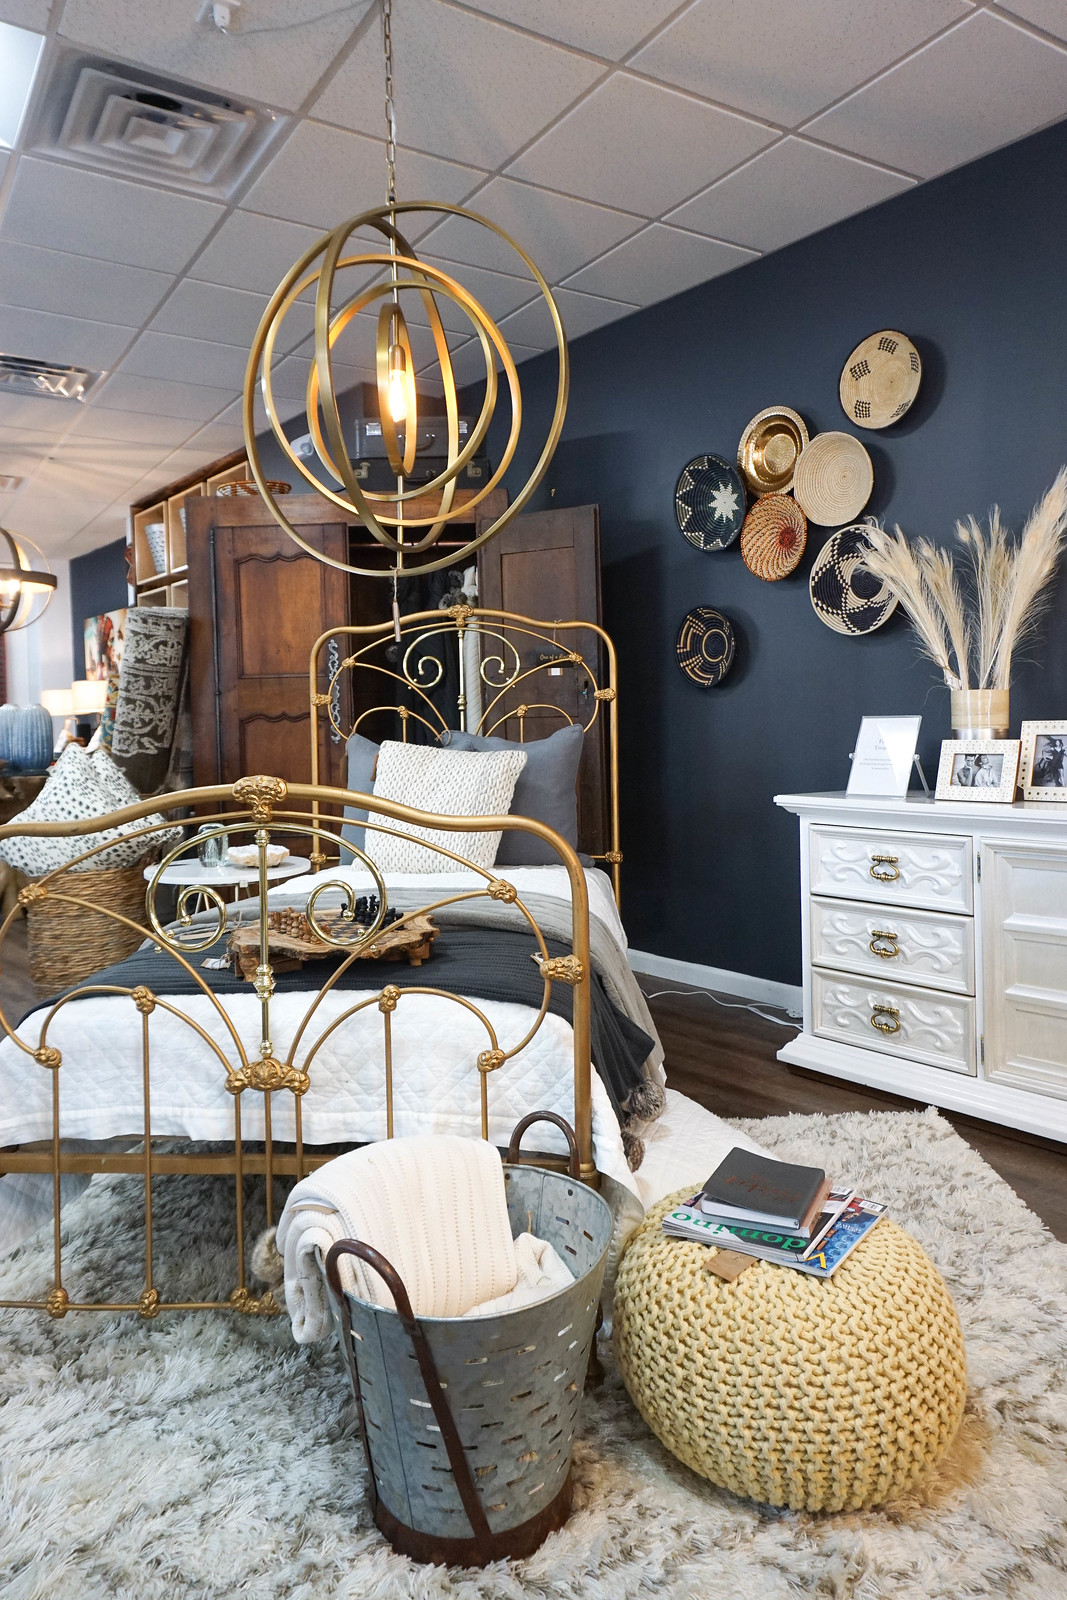 Fofie & Mia's Home Furnishings Decor Westchester New York